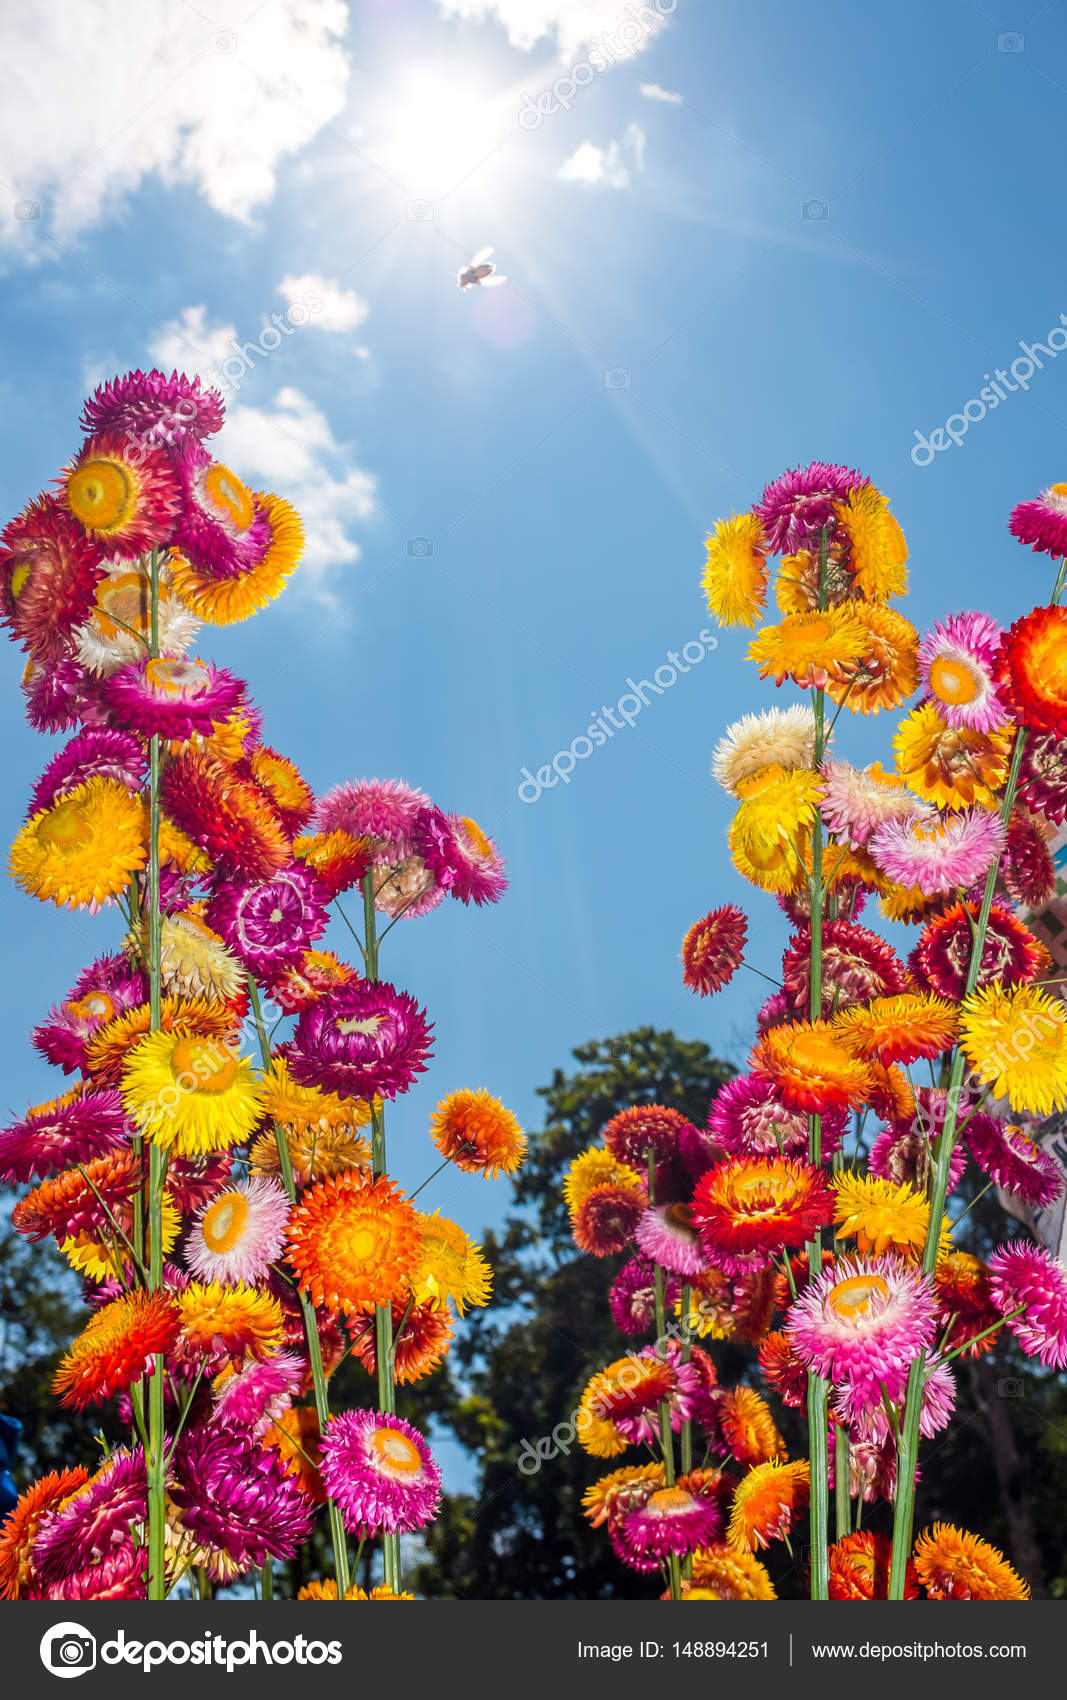 Beautiful bouquet of colorful dry straw flowers or everlasting with beautiful bouquet of colorful dry straw flowers or everlasting over blue sky with clouds and sunlight outdoor at the daytime on summer day izmirmasajfo